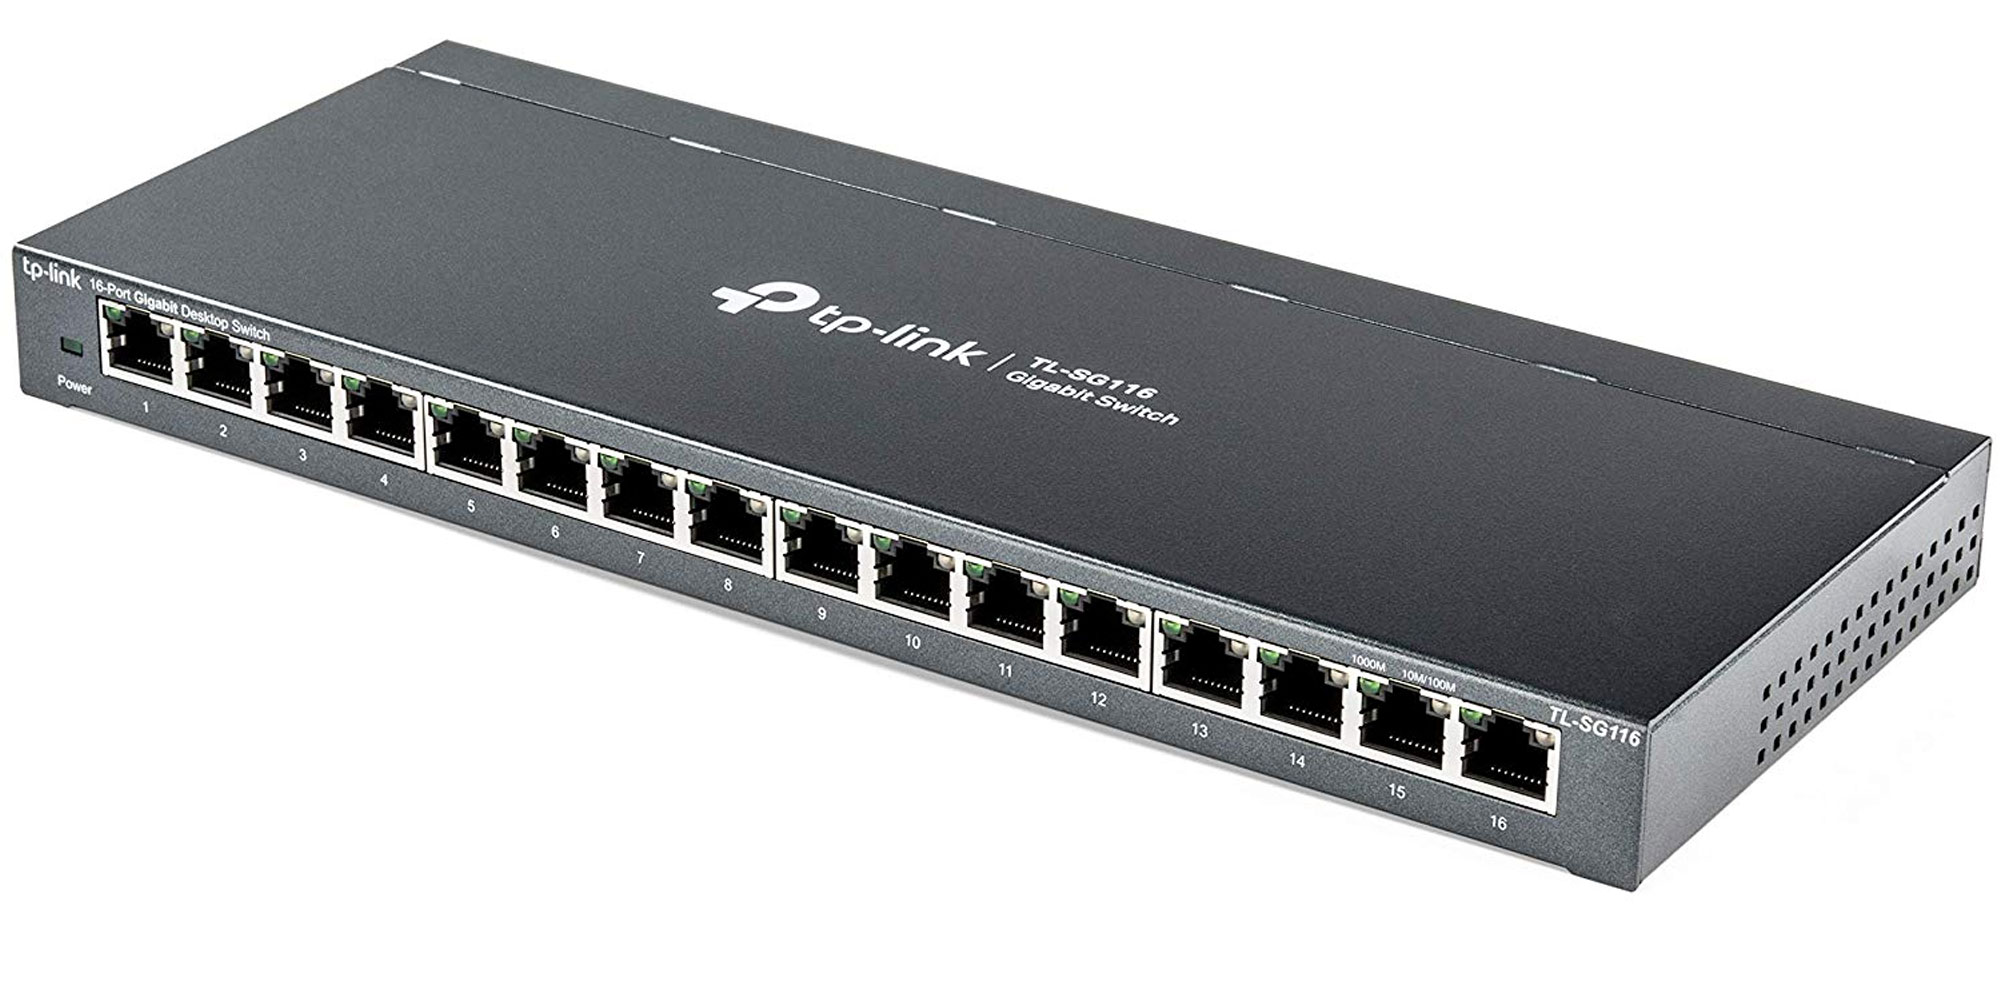 Expand your home network w/ the TP-Link 16-port Gigabit switch for $55 (Reg. $70)